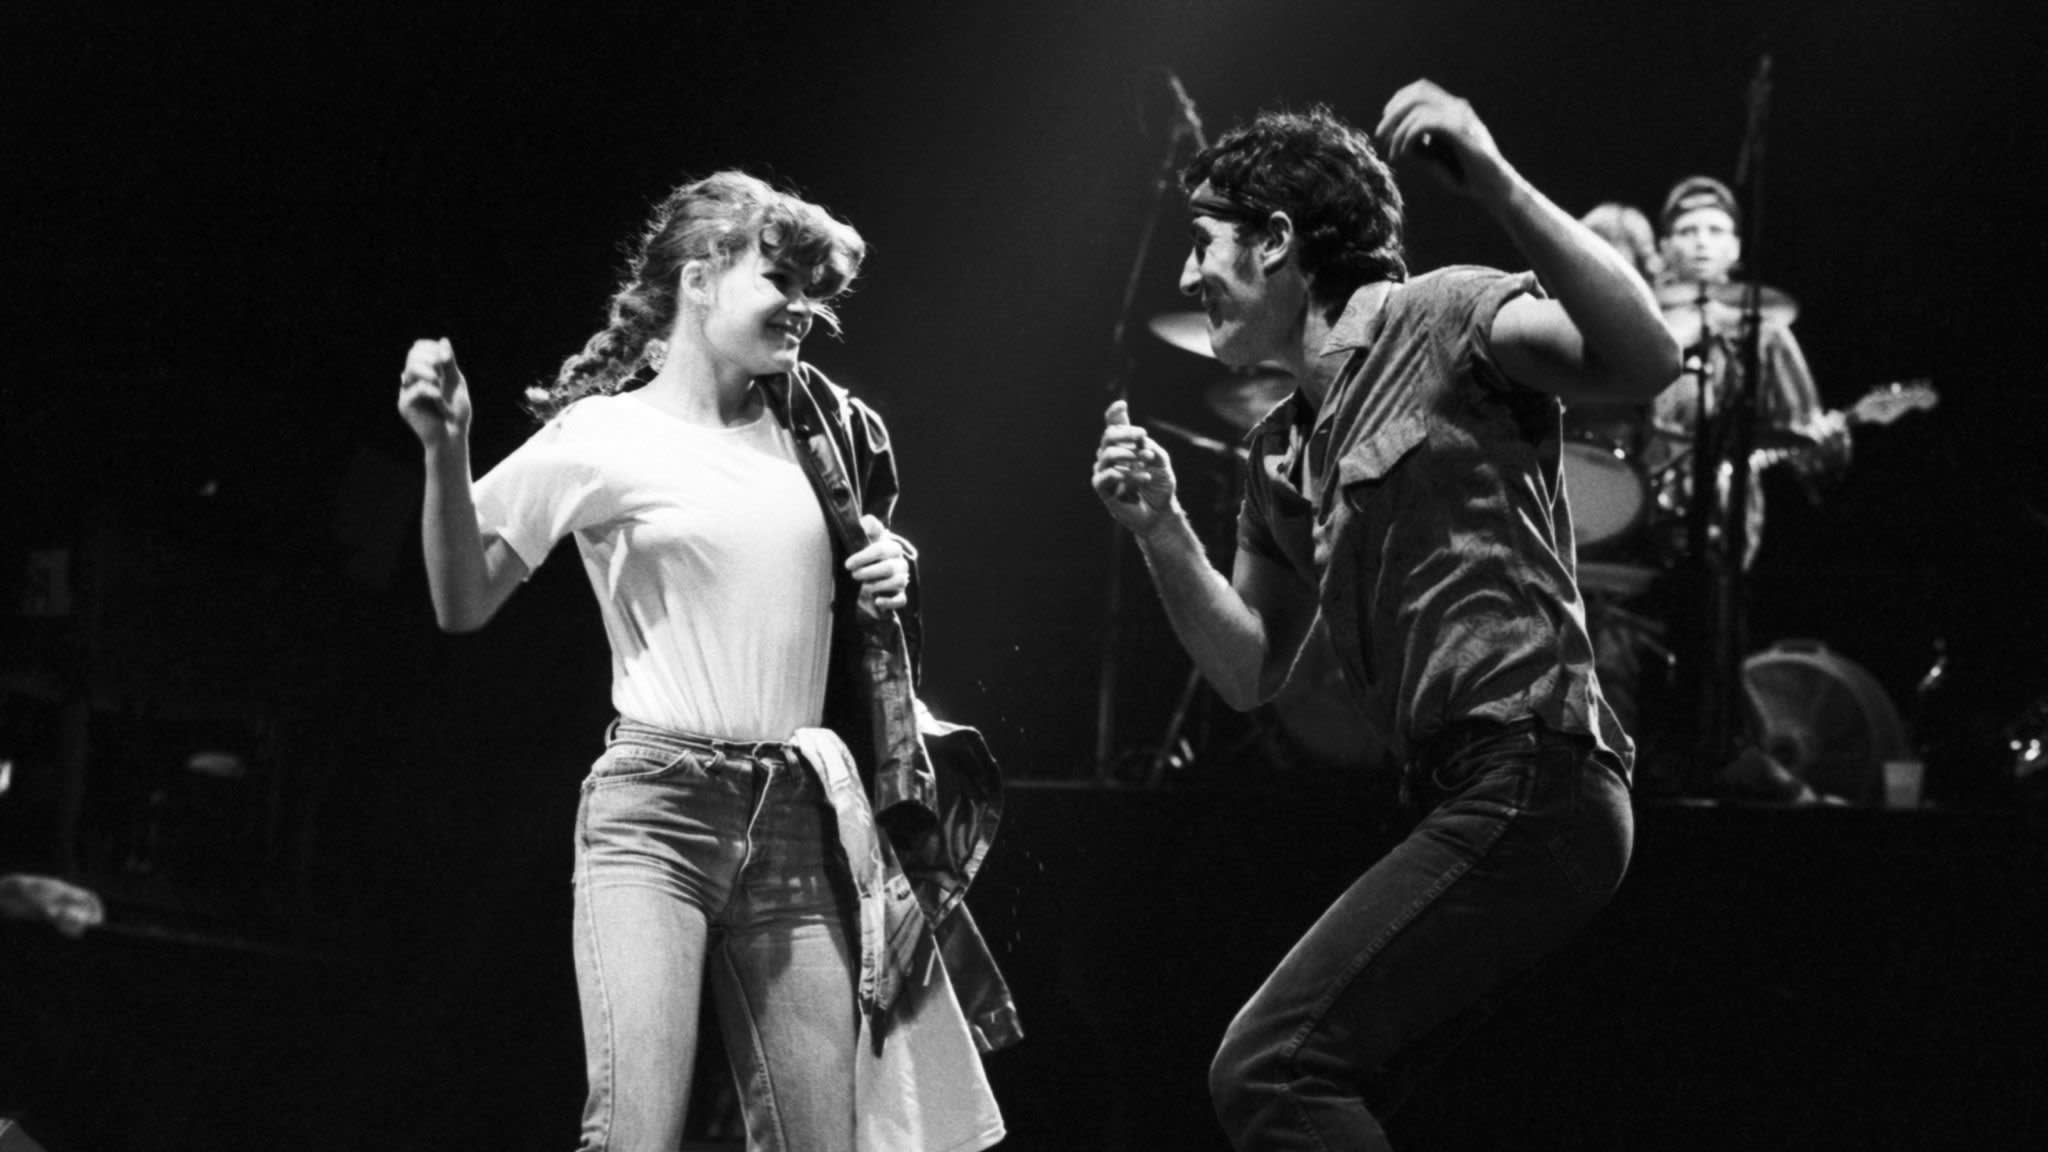 Dancing In The Dark Bruce Springsteen S Pop Hit Has A Sting In Its